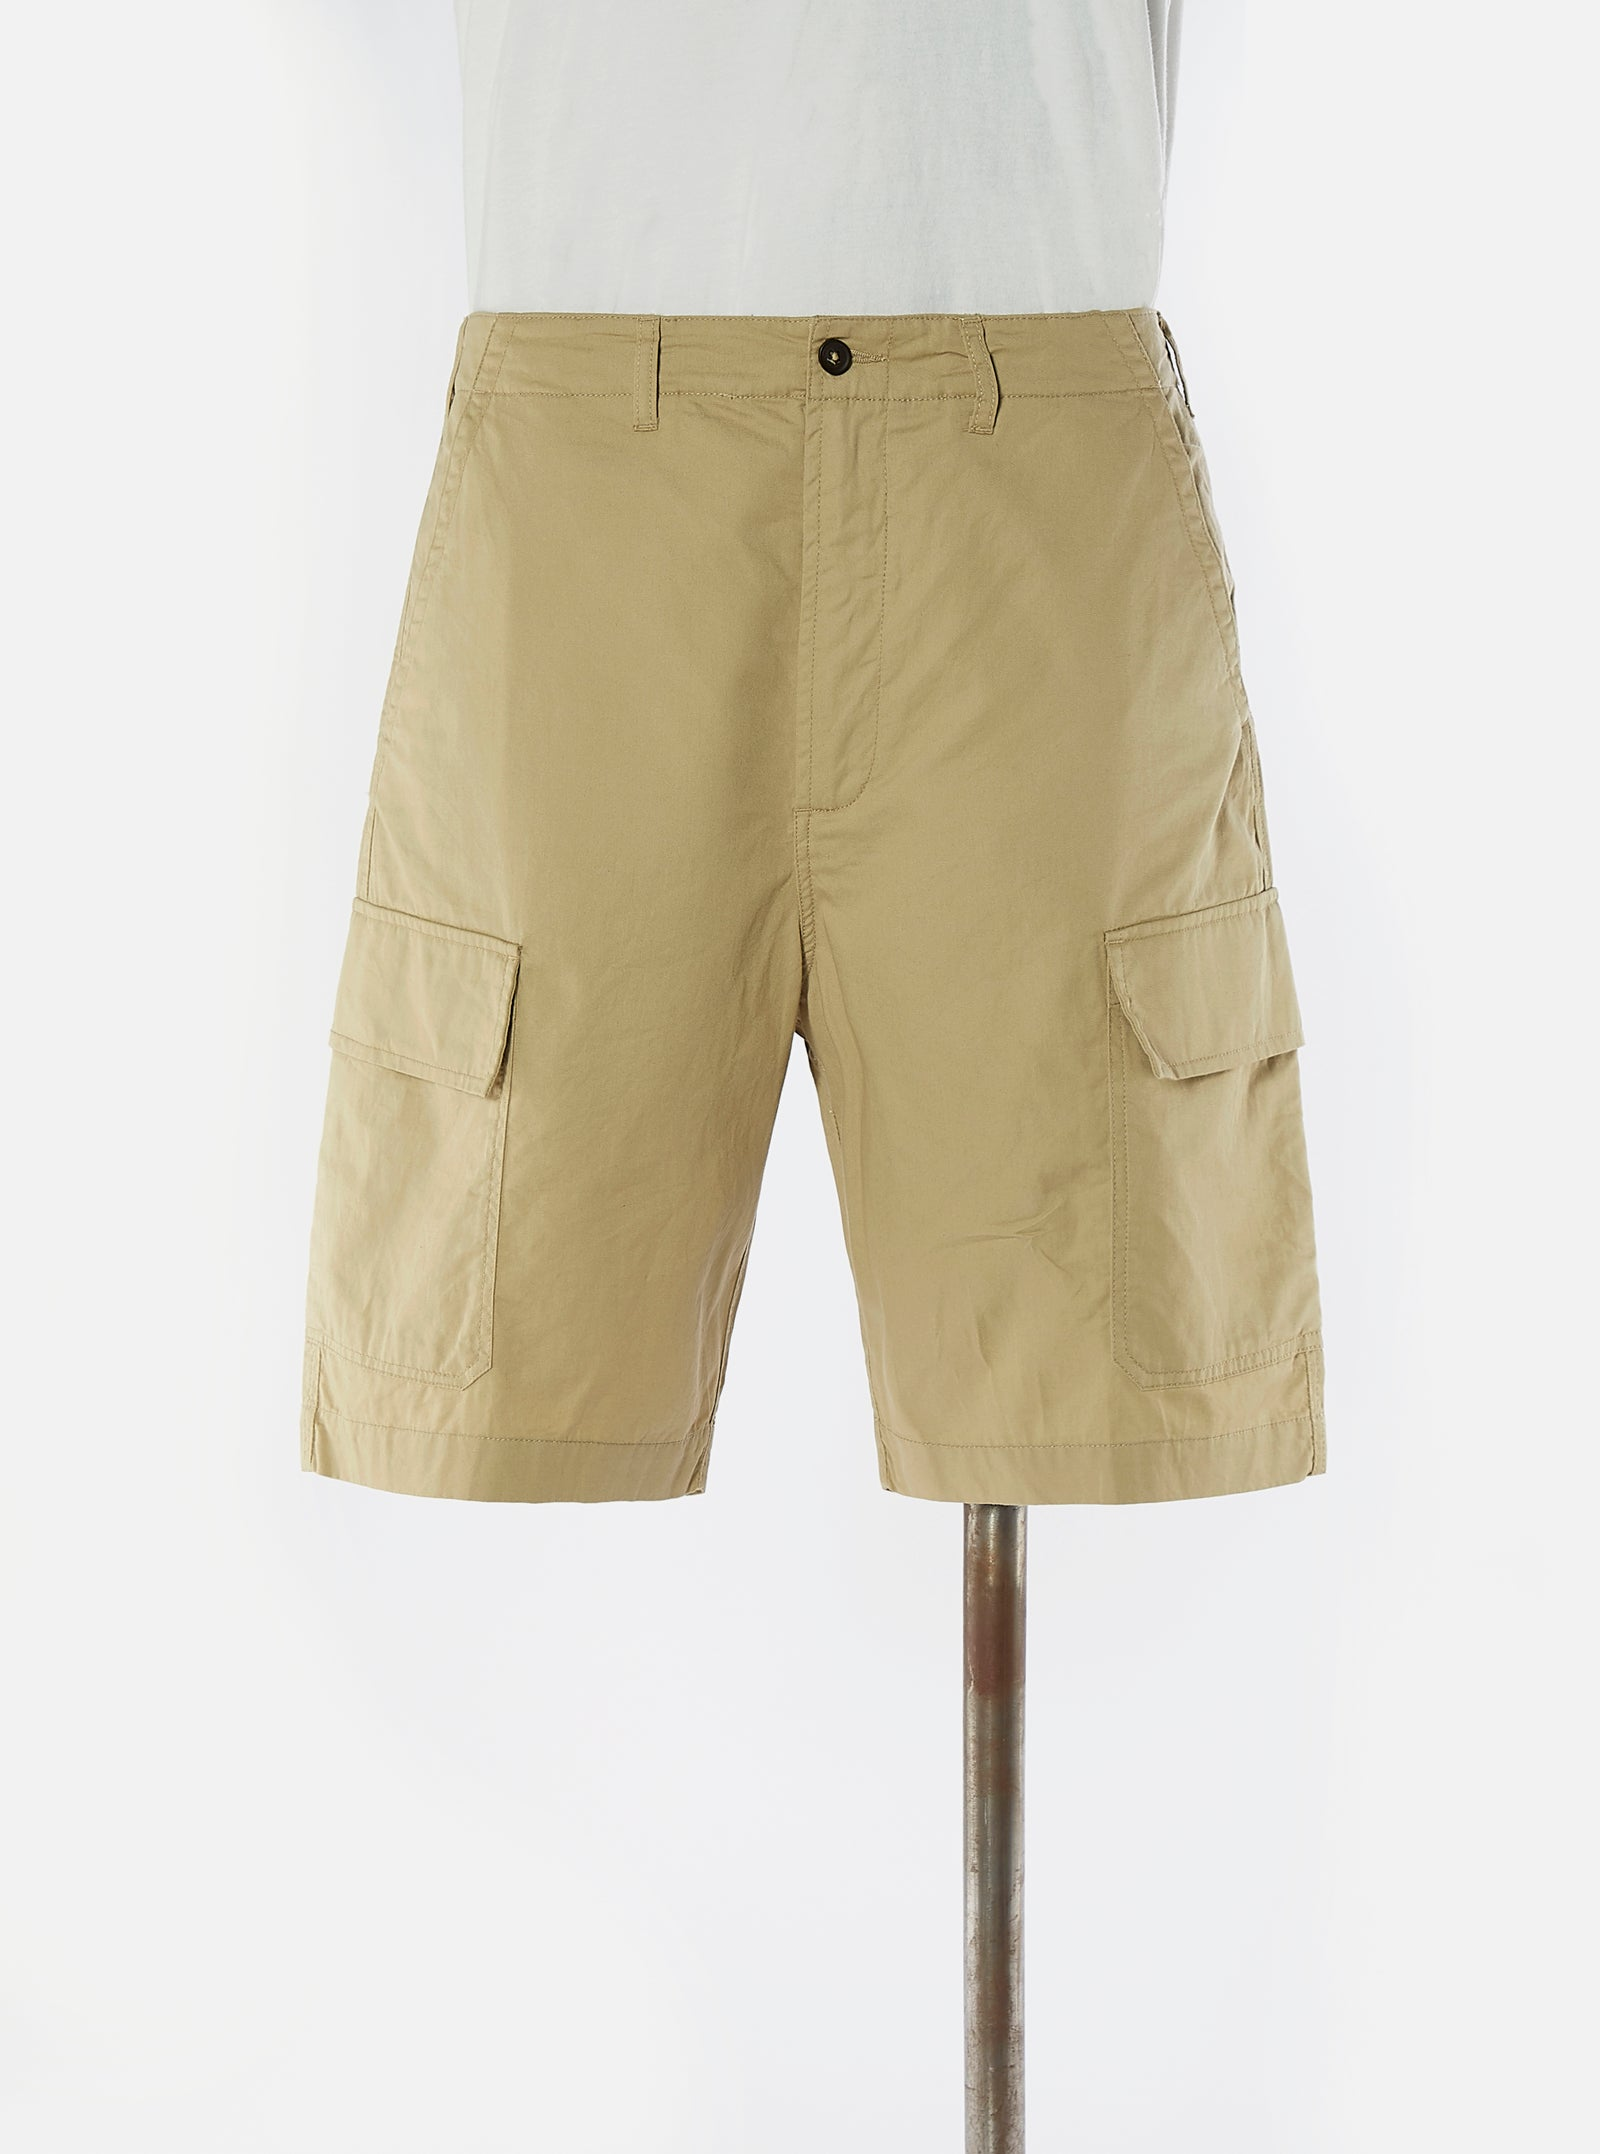 Universal Works MW Cargo Short in Tan Fine Twill